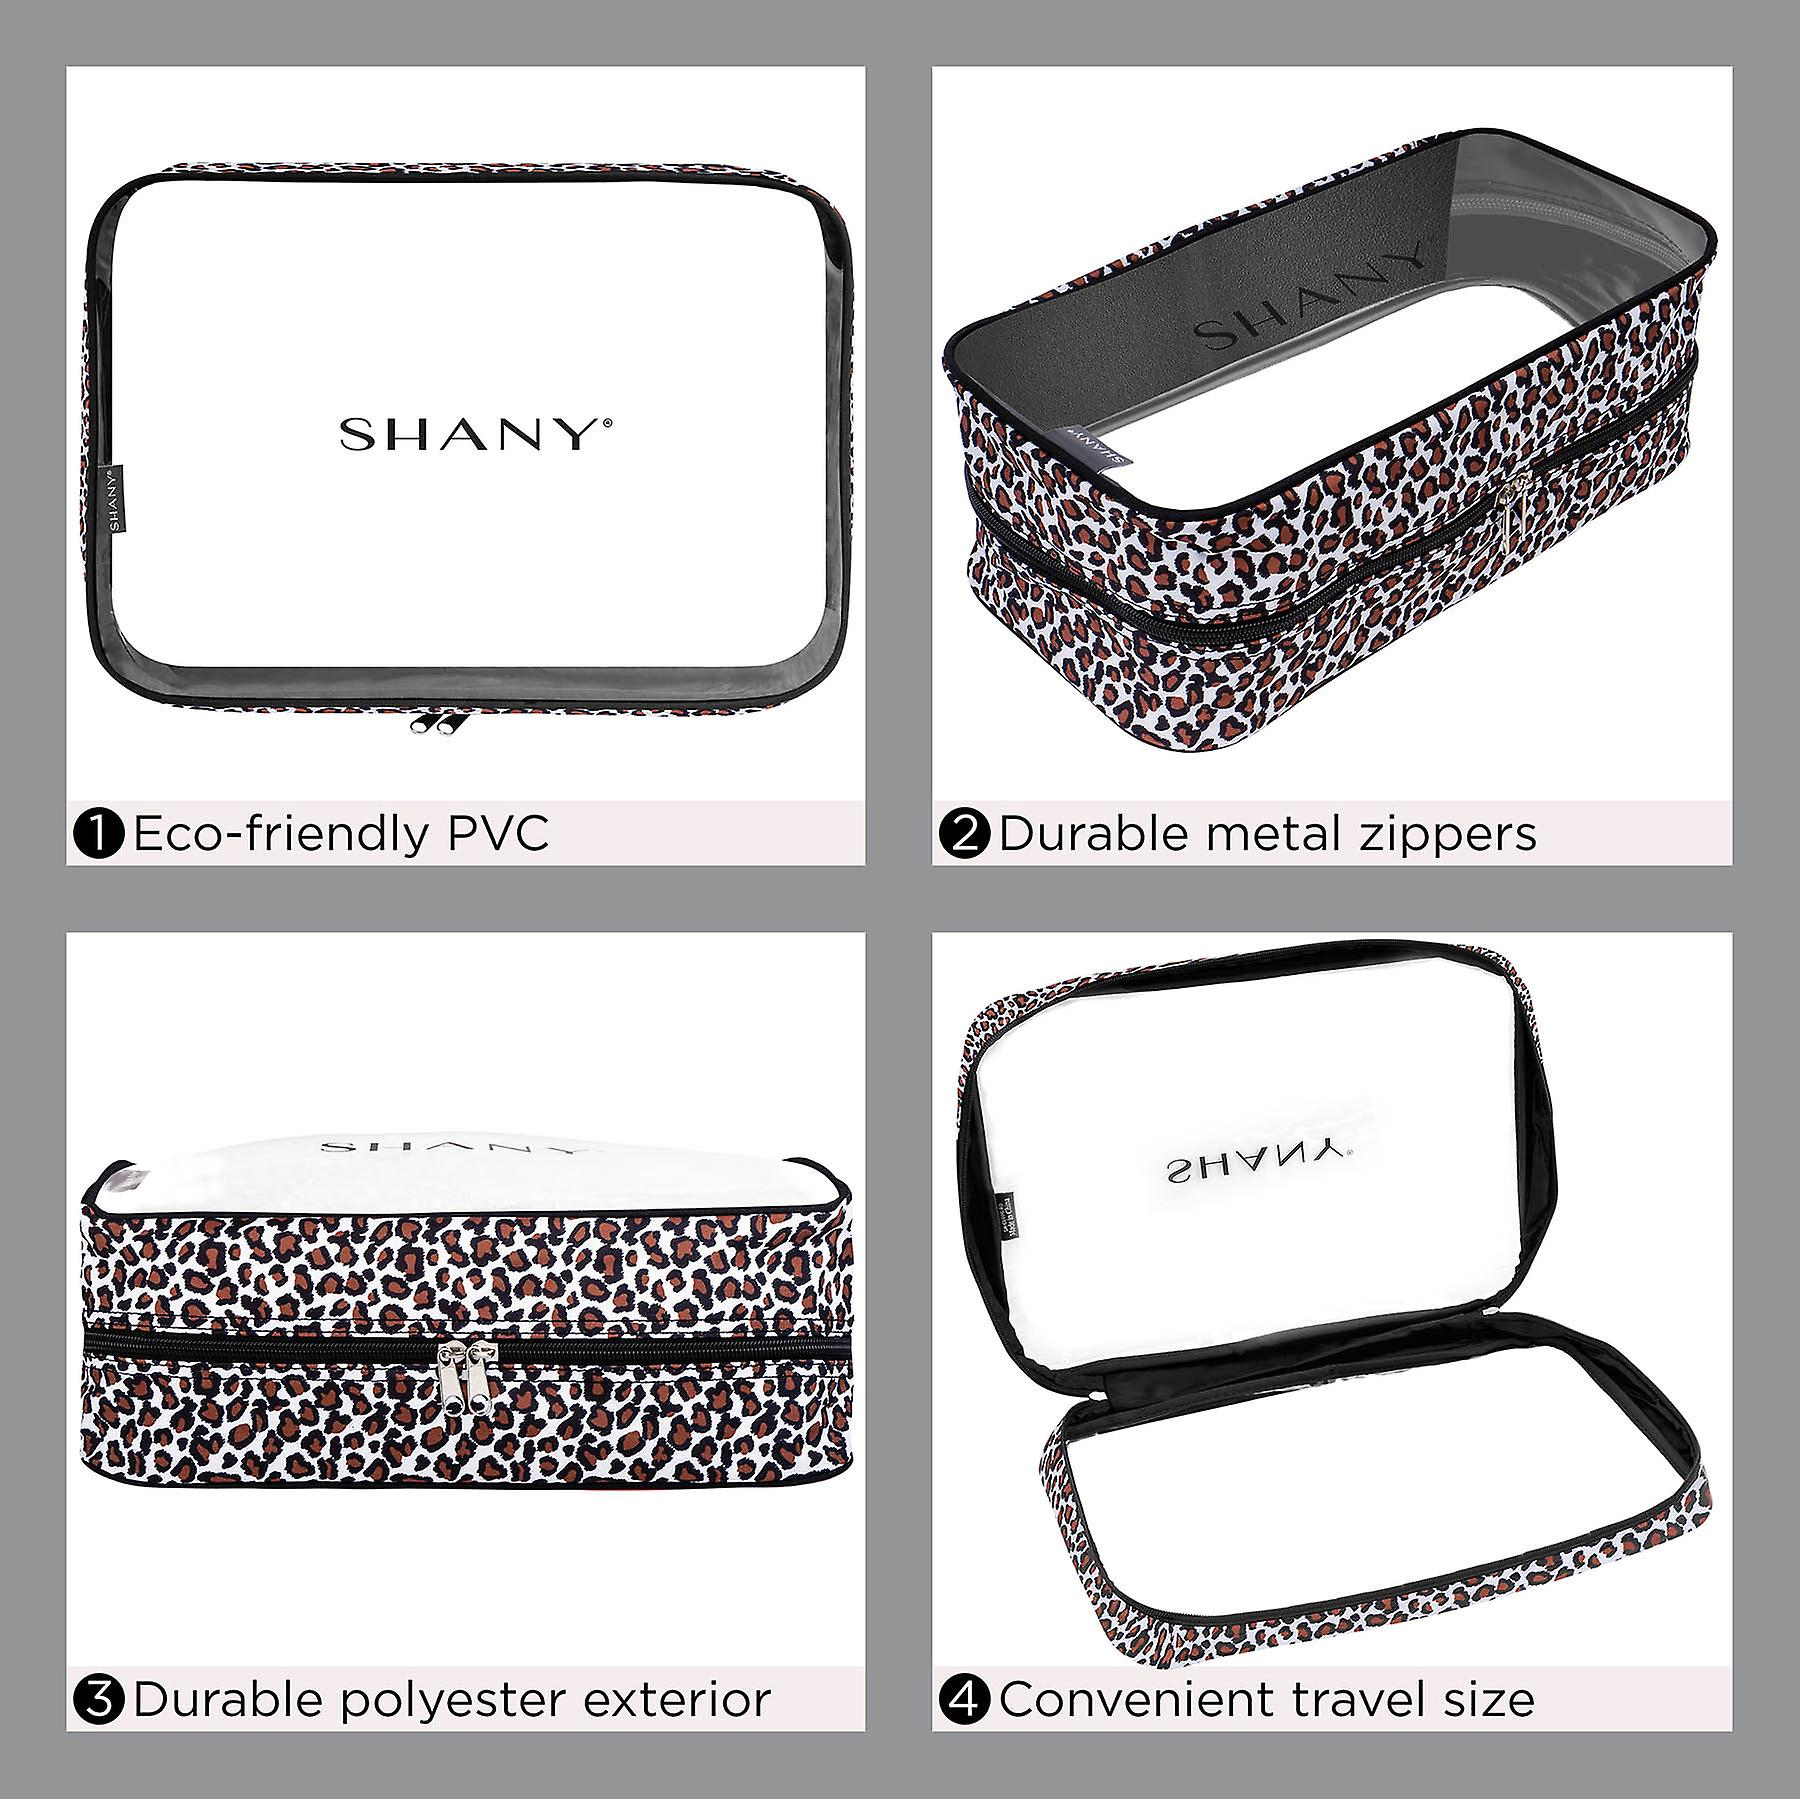 SHANY Clear Water-Resistant Luggage Organizer Set - Three Transparent PVC Makeup and Toiletry Storage with Zipper Closures and Black Exterior Lining - Set of 3